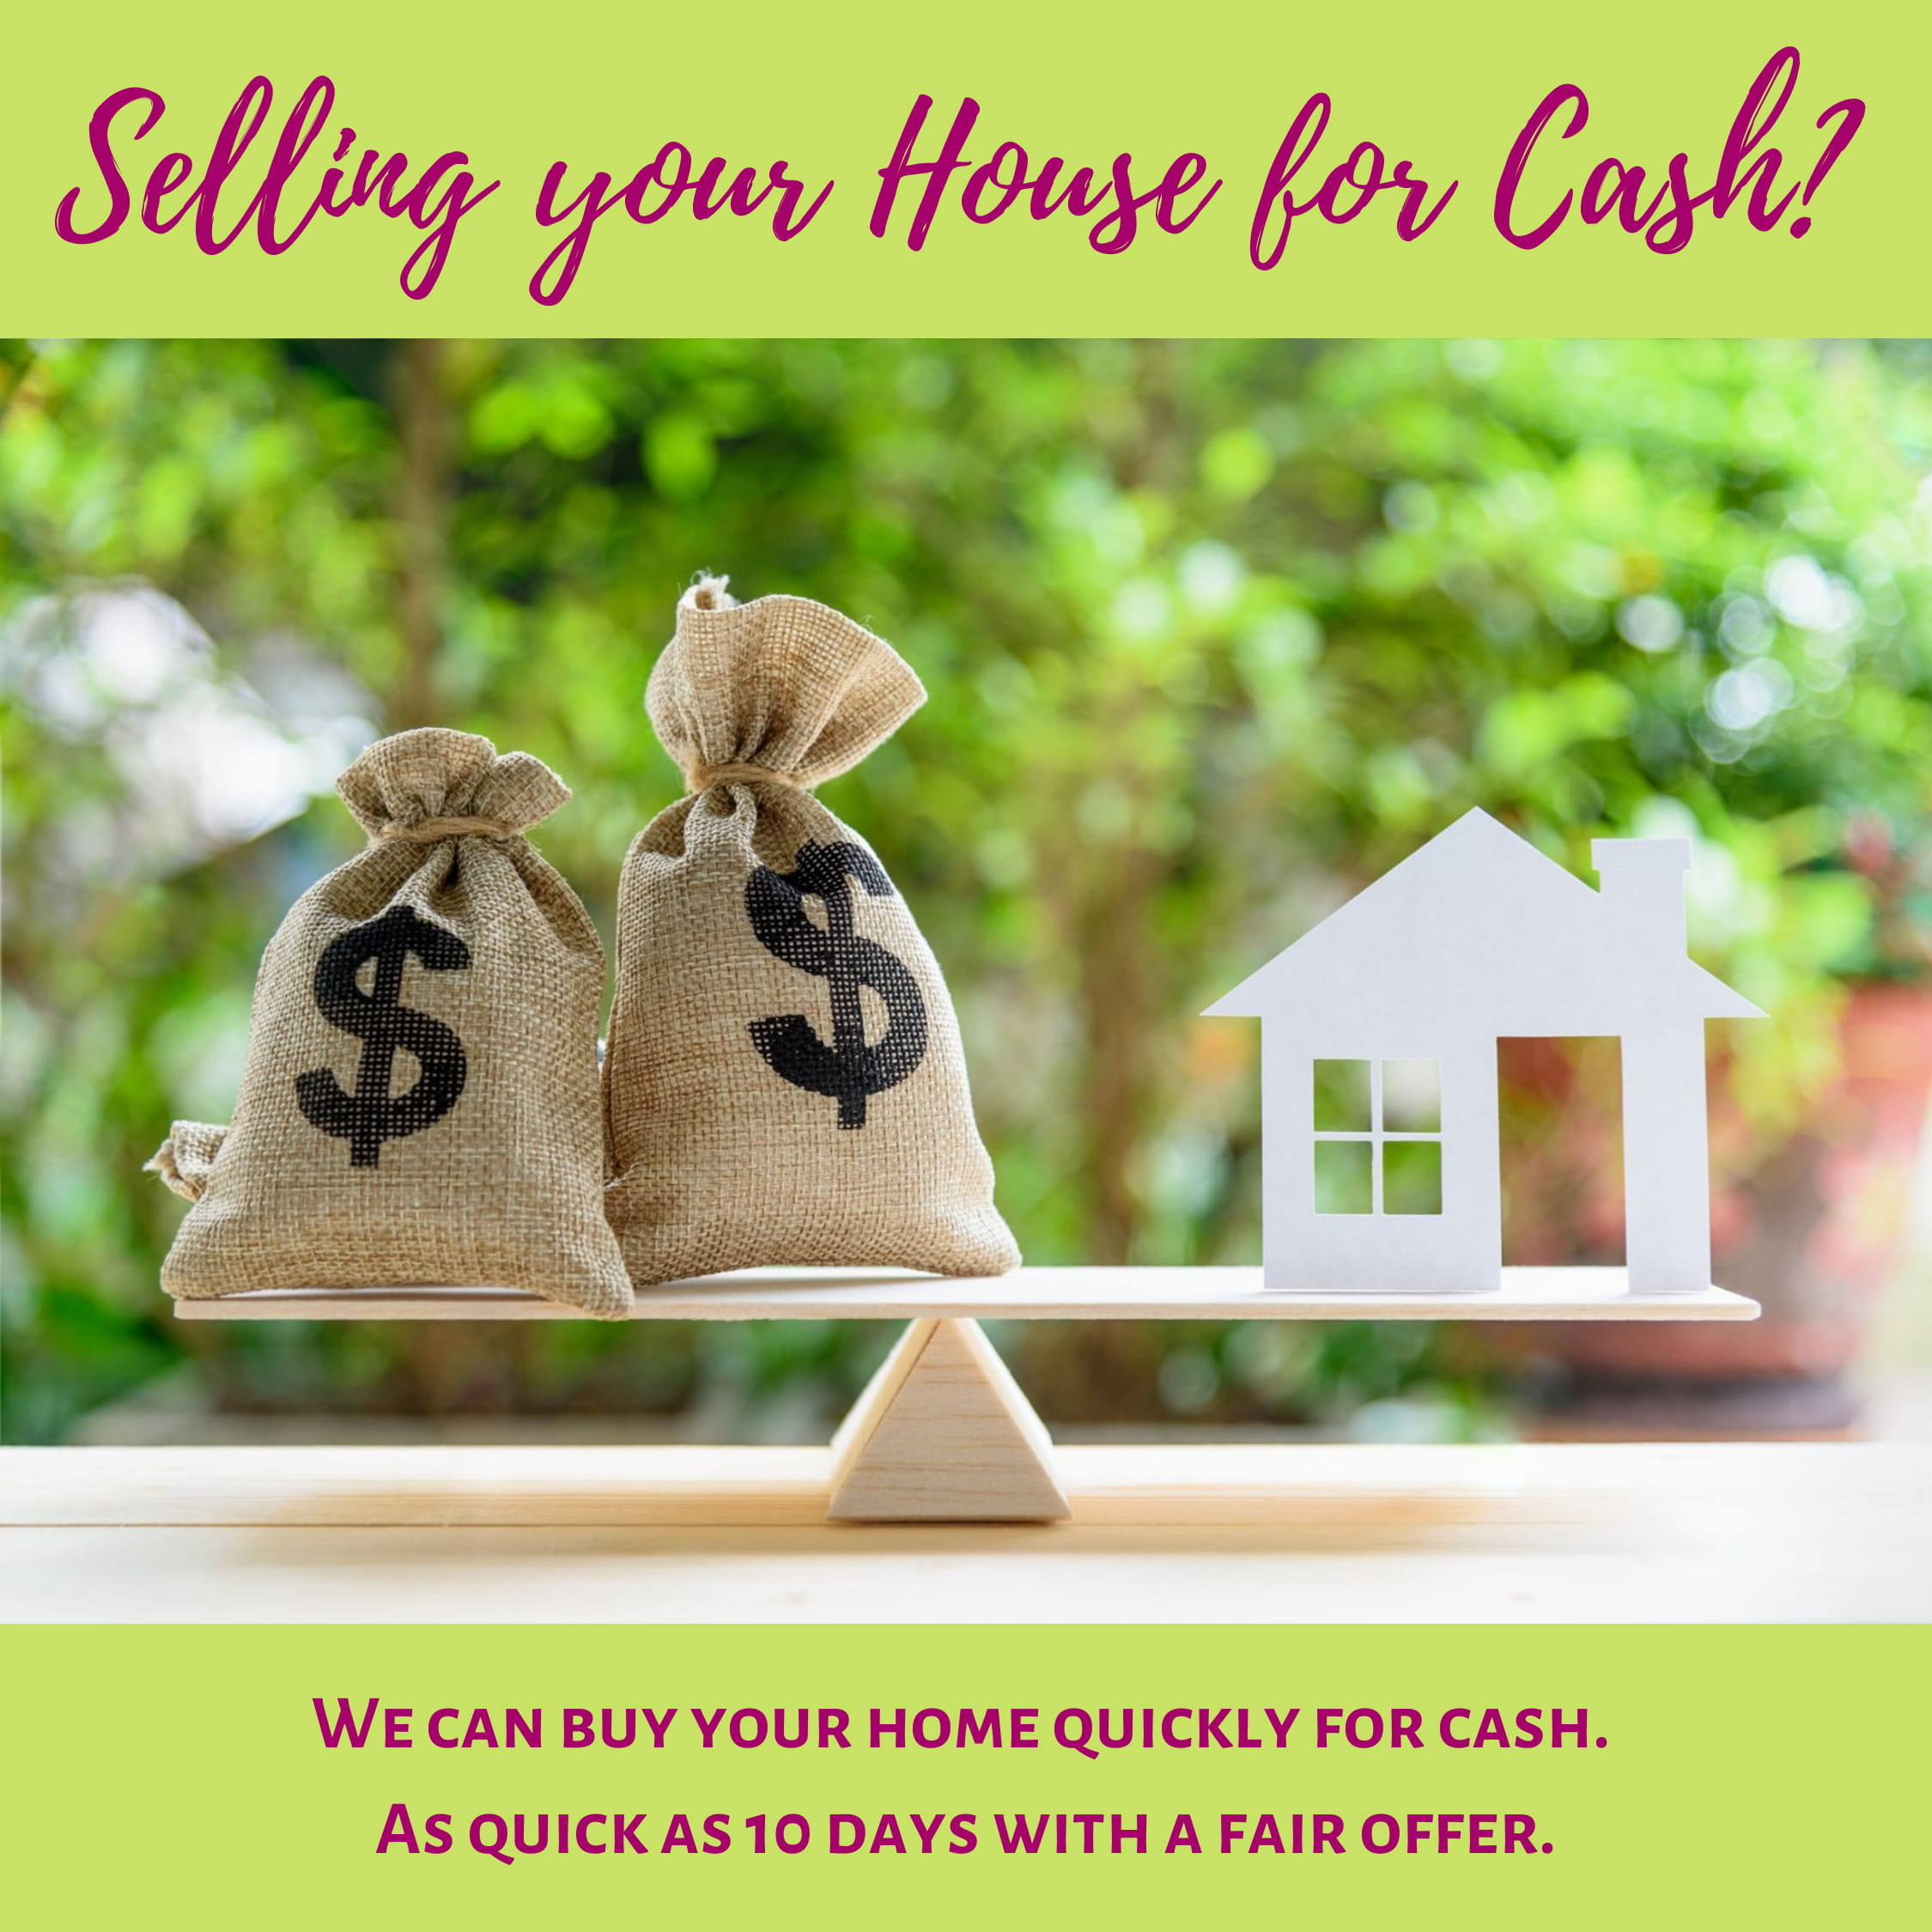 Selling your House for Cash? Learn the Opportunities and Challenges